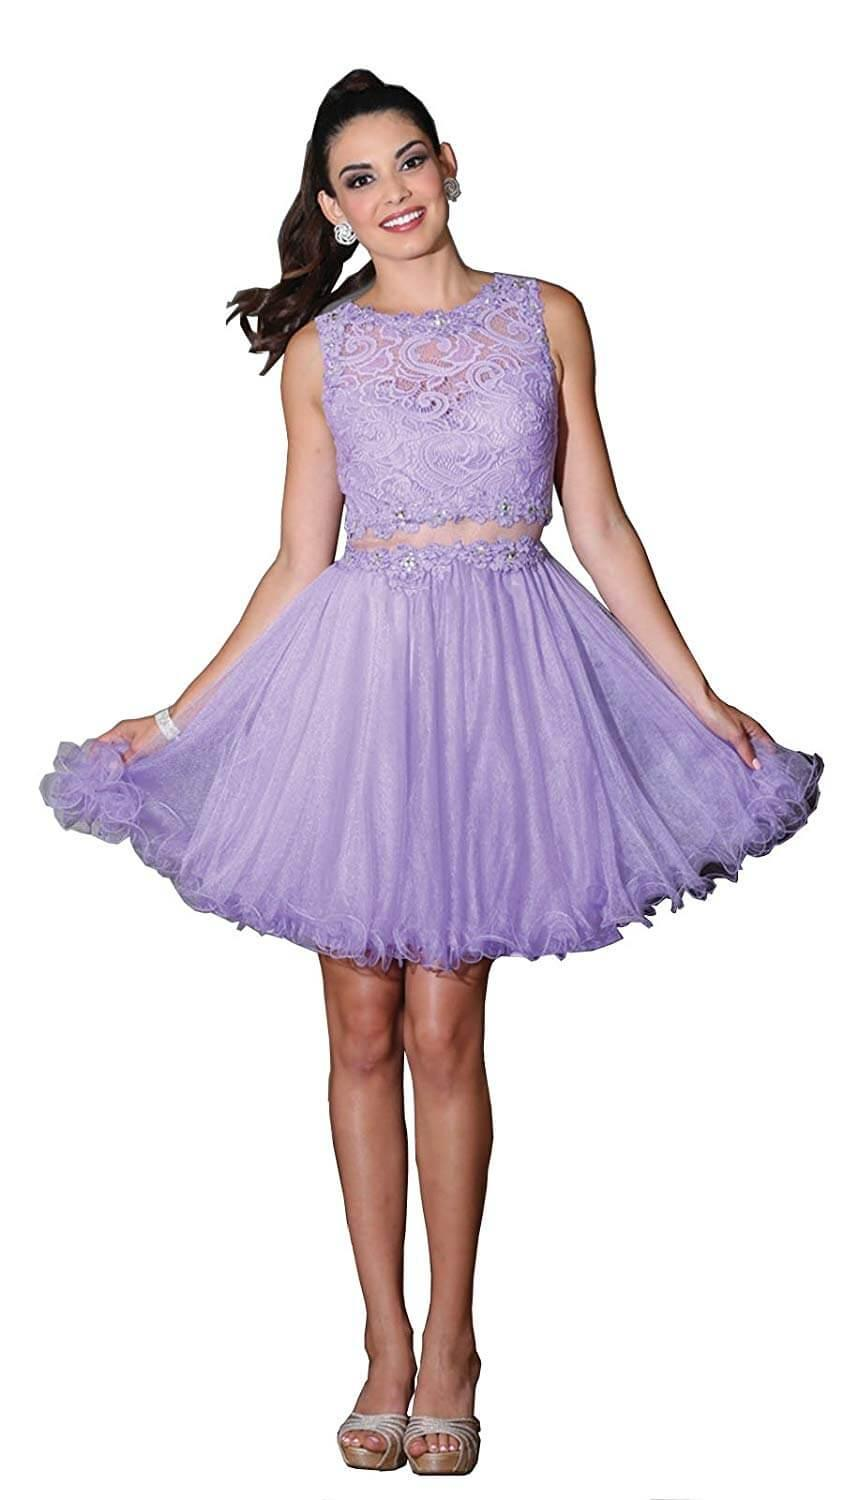 Short Prom Formal Homecoming Dress - The Dress Outlet Lilac May Queen